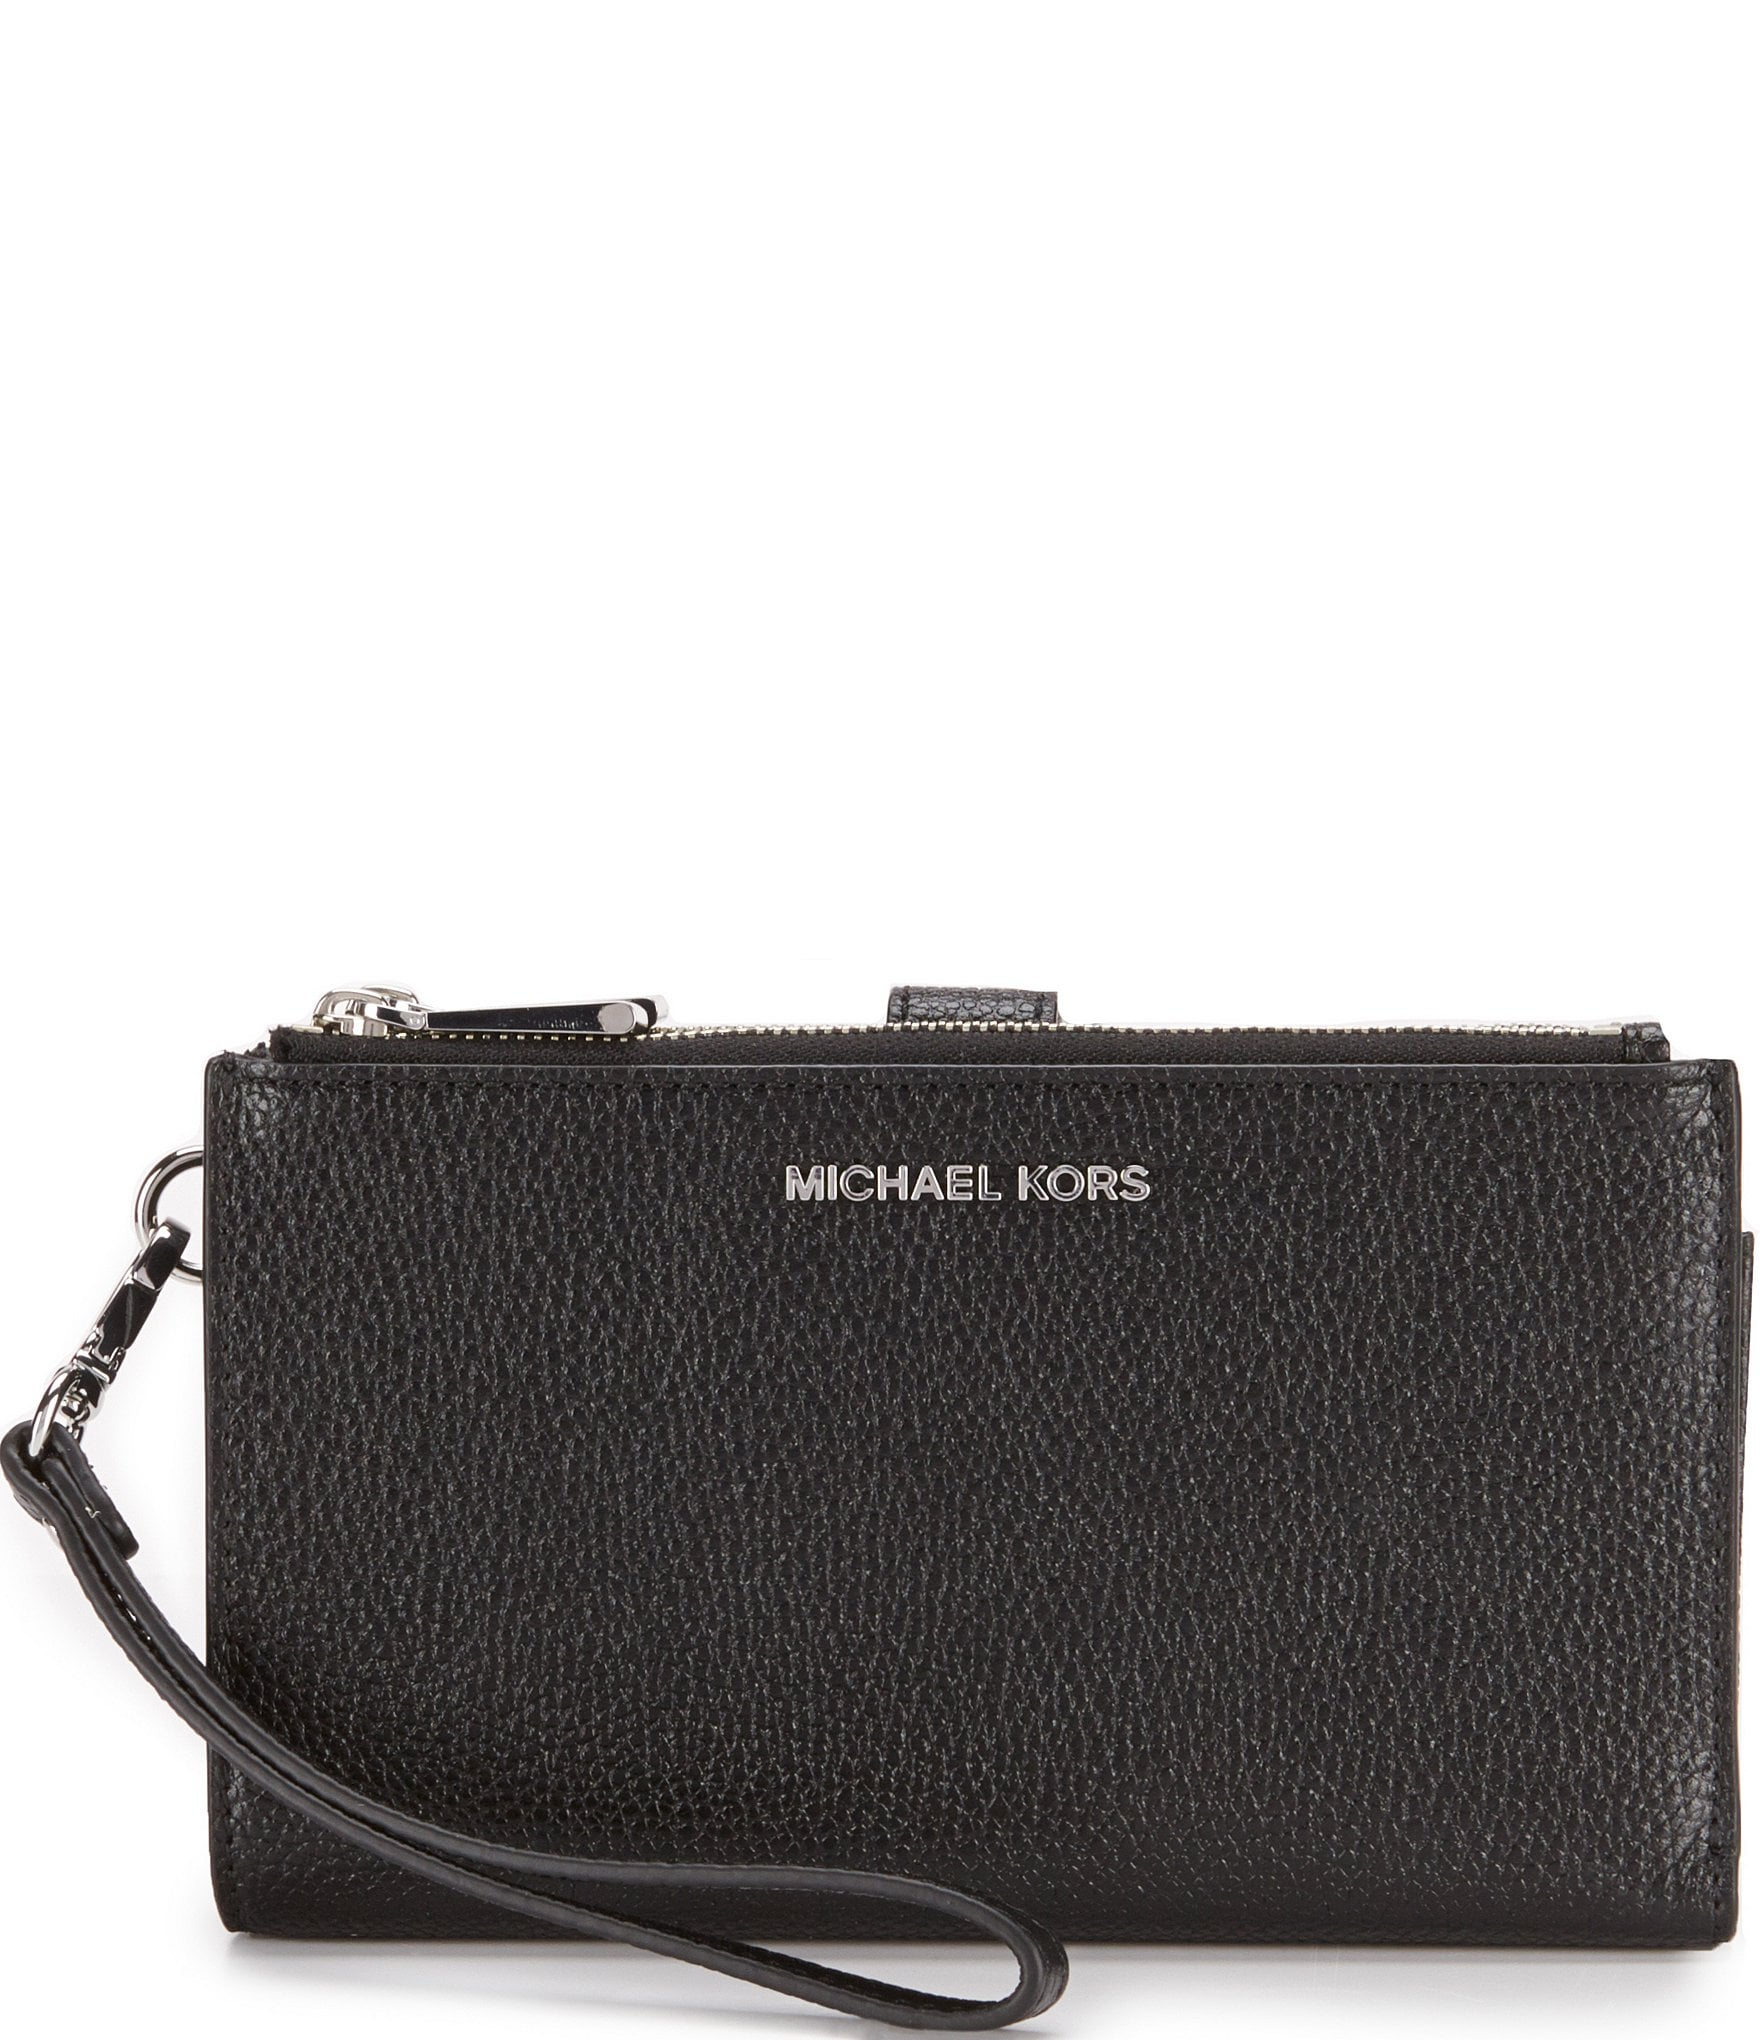 Michael kors outlet online sale - michael kors outlet cheap sale handbags,bags,purses with high quality and free shipping all over the world.